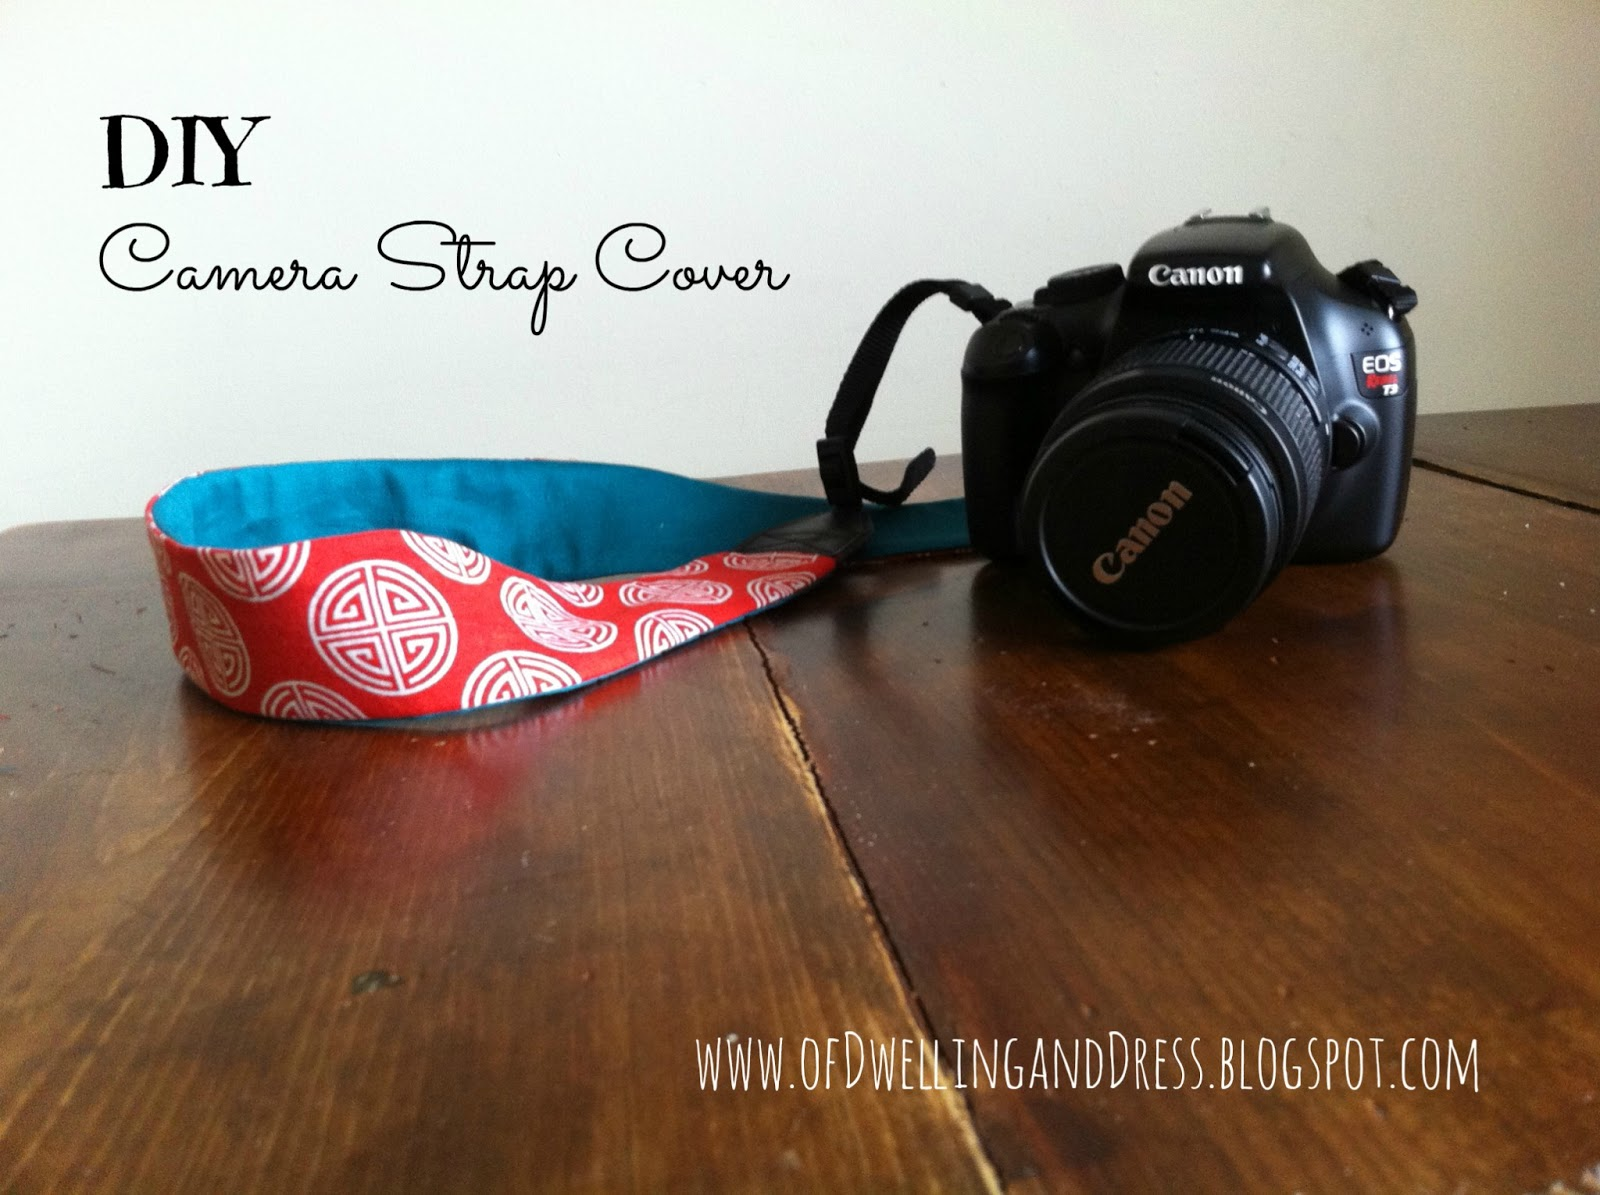 of Dwelling and Dress: DIY Camera Strap Cover